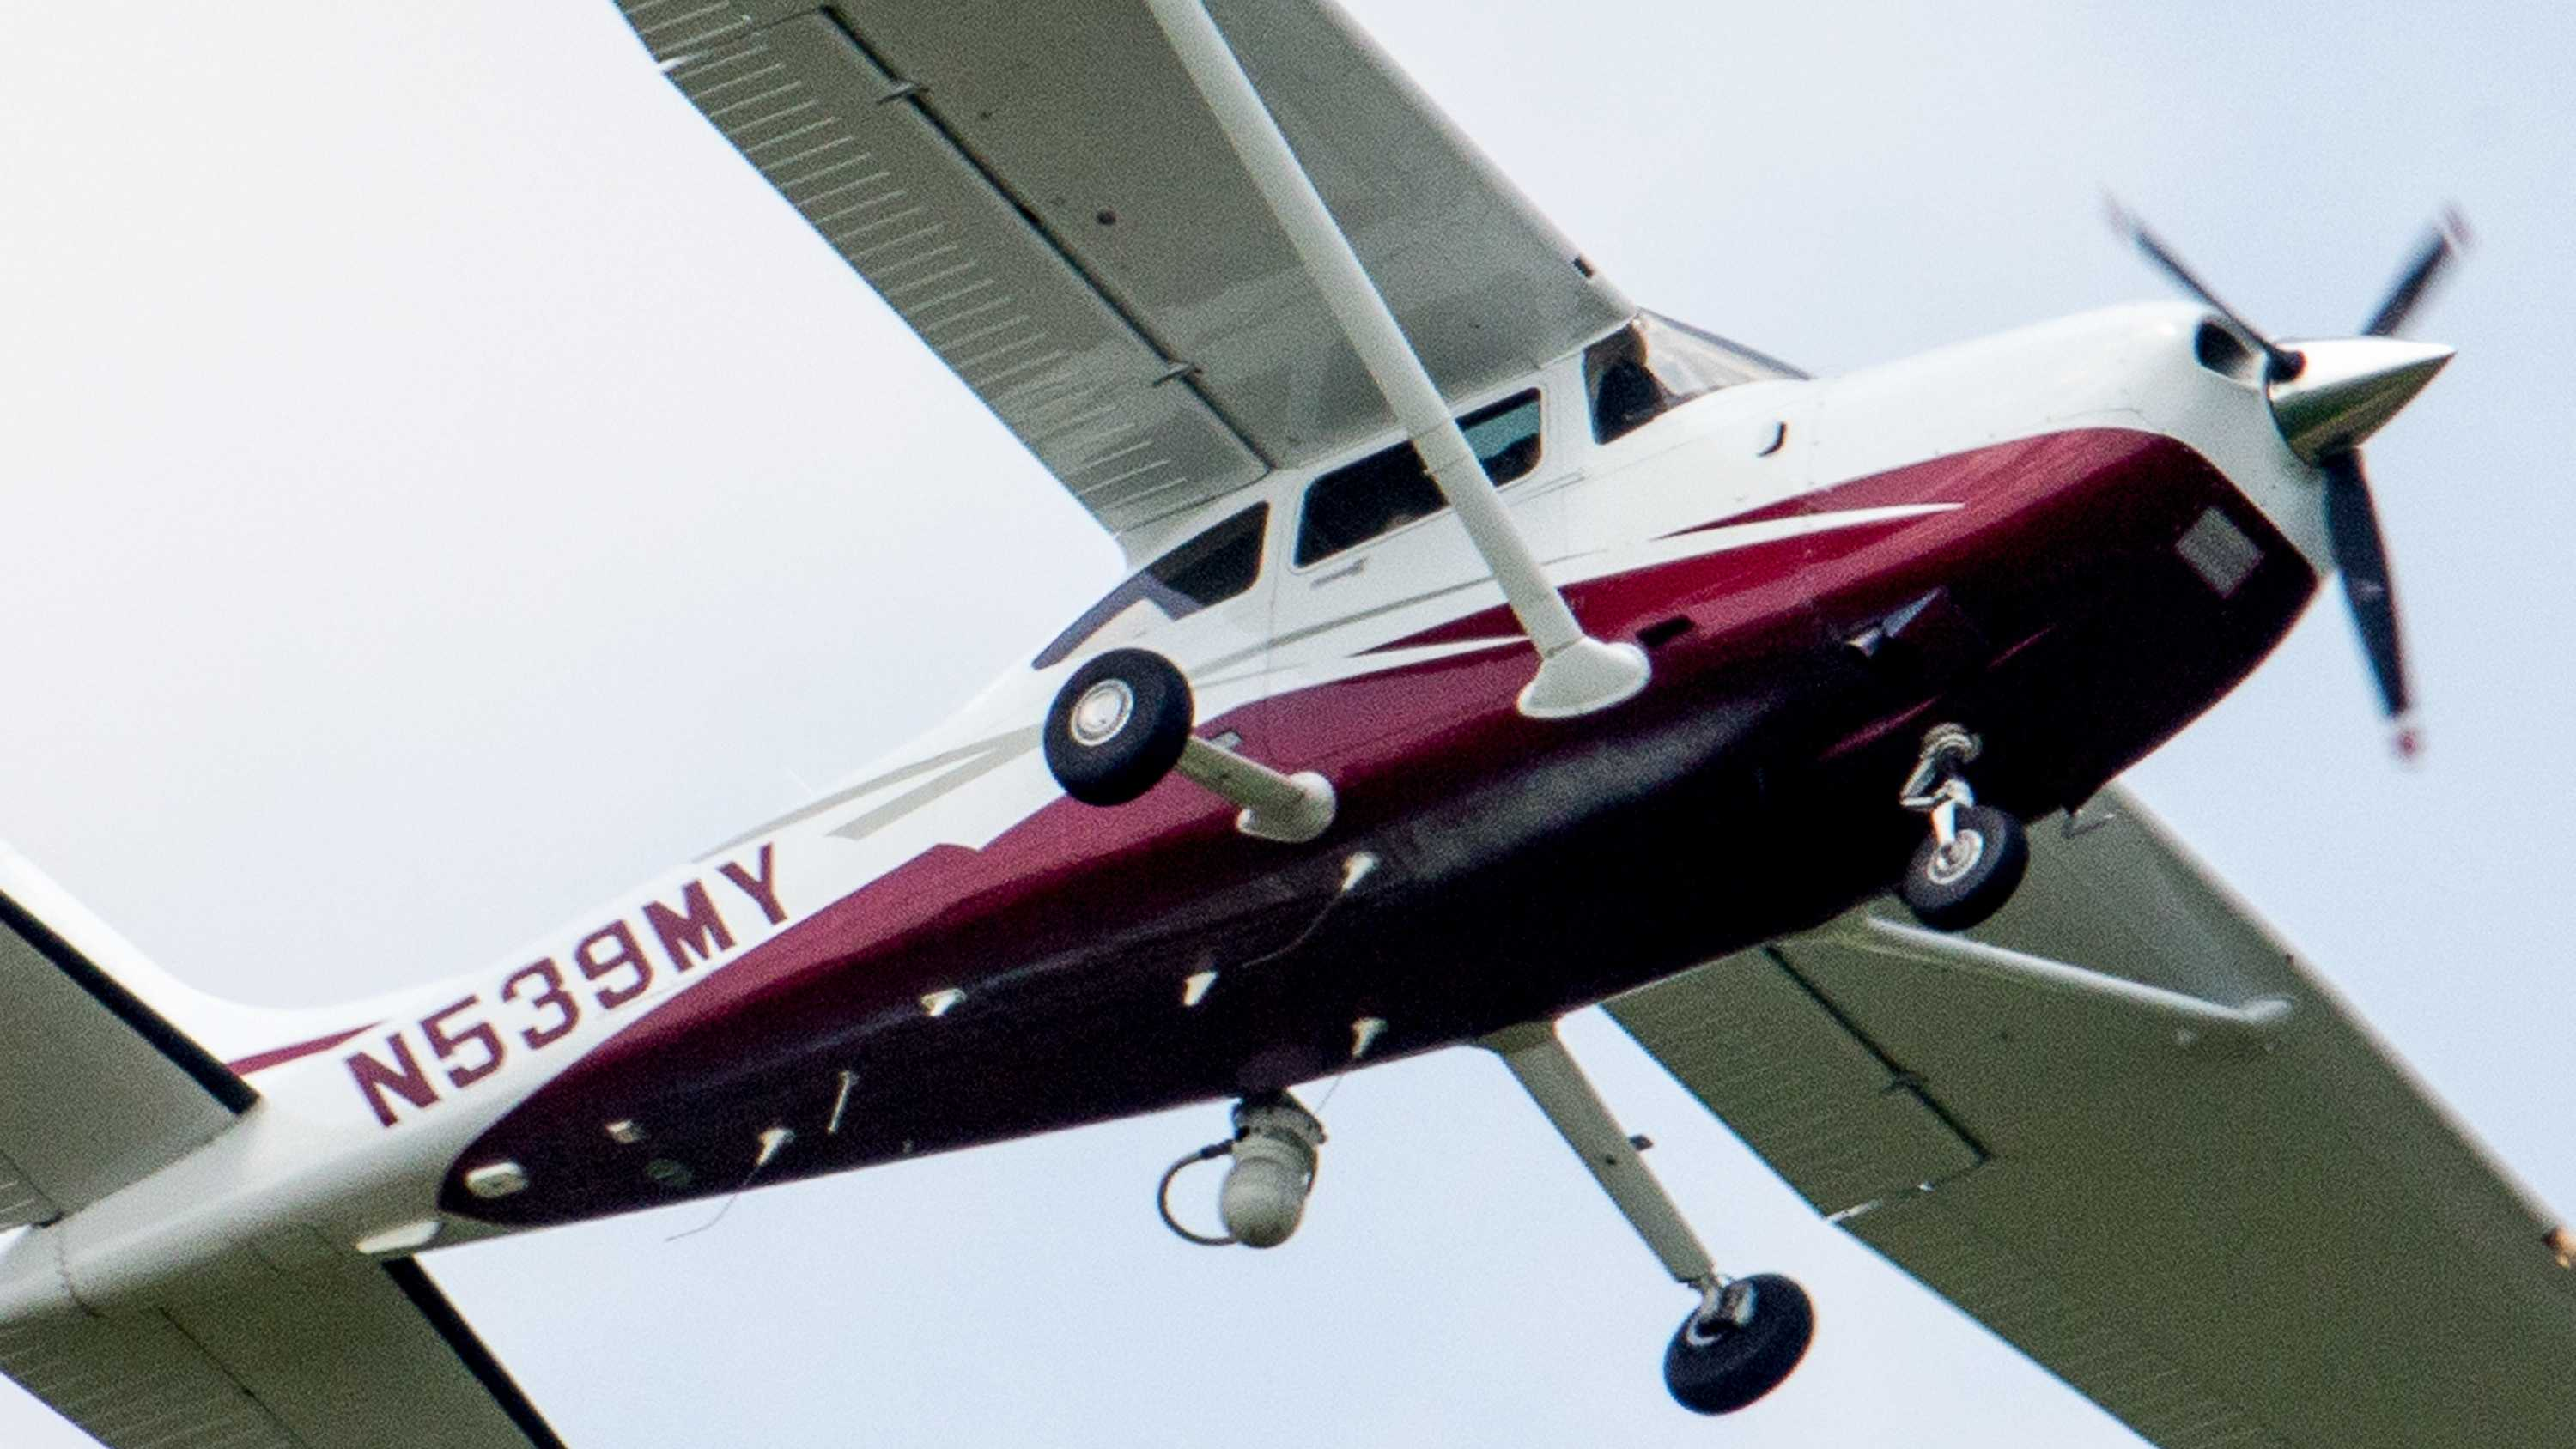 In this photo taken May 26, 2015, a small plane flies near Manassas Regional Airport in Manassas, Va. The plane is among a fleet of surveillance aircraft by the FBI, which are primarily used to target suspects under federal investigation. Such planes are capable of taking video of the ground, and some _ in rare occasions _ can sweep up certain identifying cellphone data.